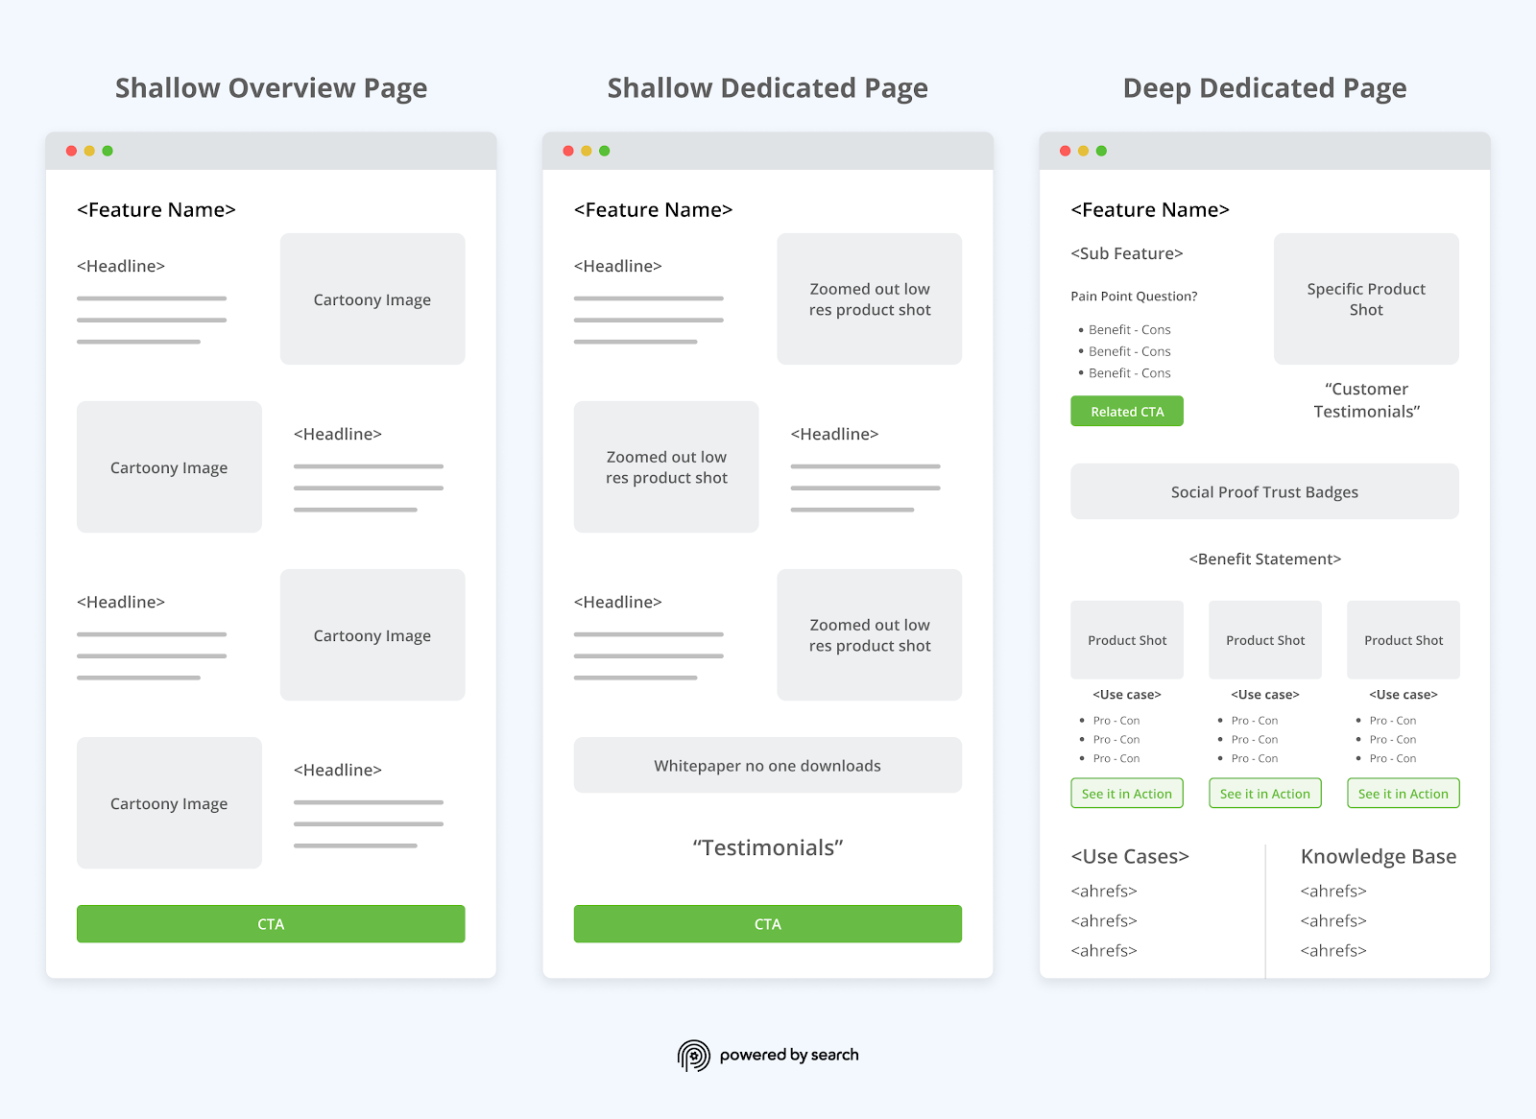 Product page design in B2B SaaS Demand Generation: Shallow Overview Page vs Shallow Dedicated page vs Deep Dedicated Page